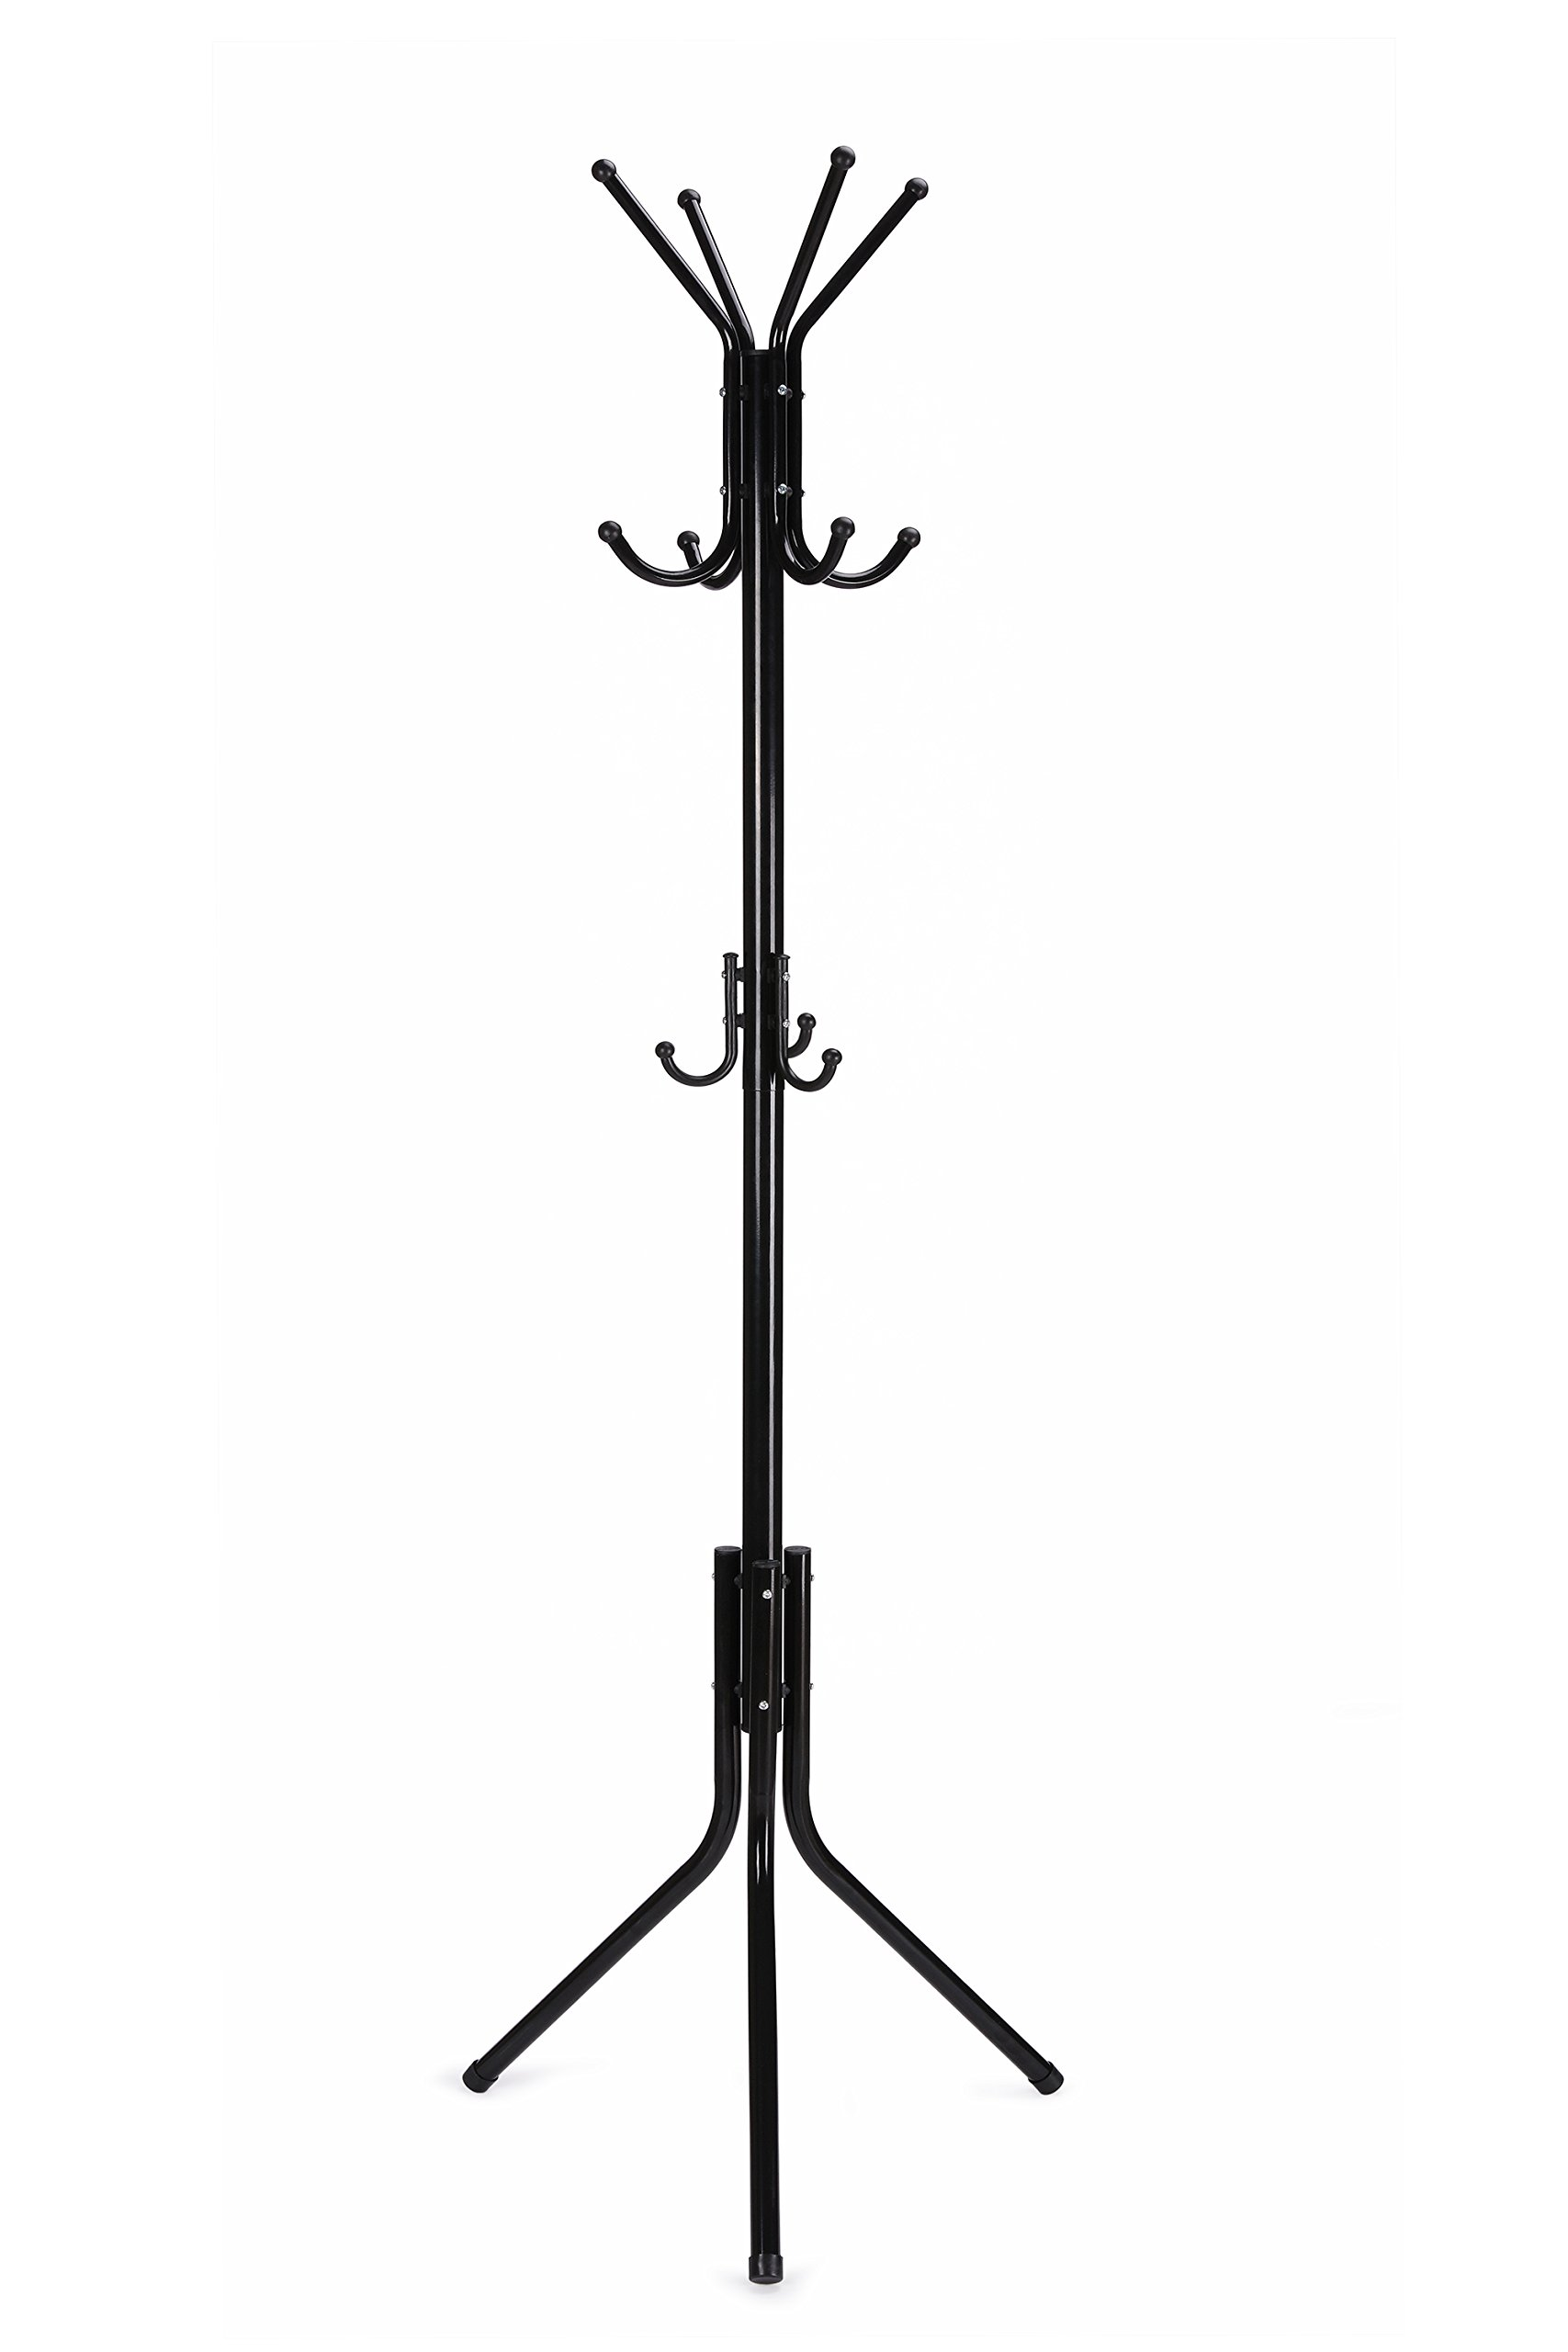 WILSHINE Coat Rack Standing Coat Tree Metal Black with 11 Hooks - STURDY: diameter-expanded main pole and tripod legs make this standing coat rack able to bear heavier loading and stay more firmly at the entryway, in the living room/bedroom or in your office FUNCTIONAL: with 11 hooks in 3 tiers this coat stand can handle daily wearing garments and accessories for the whole family; top tier of hooks for hats or scarves, middle tier for coats and jackets and the bottom tier for purse and bags; the round plastic hook caps could well protect your fancy clothes, while the plastic leg caps could prevent scratches to your timber floor MATERIALS: the main part is made from durable metal with gloss black finish and the bottom tier hooks are made from plastic, this coat rack stand is water-proof, anti-rust and easy to clean - entryway-furniture-decor, entryway-laundry-room, coat-racks - 71FFQ3zuvwL -